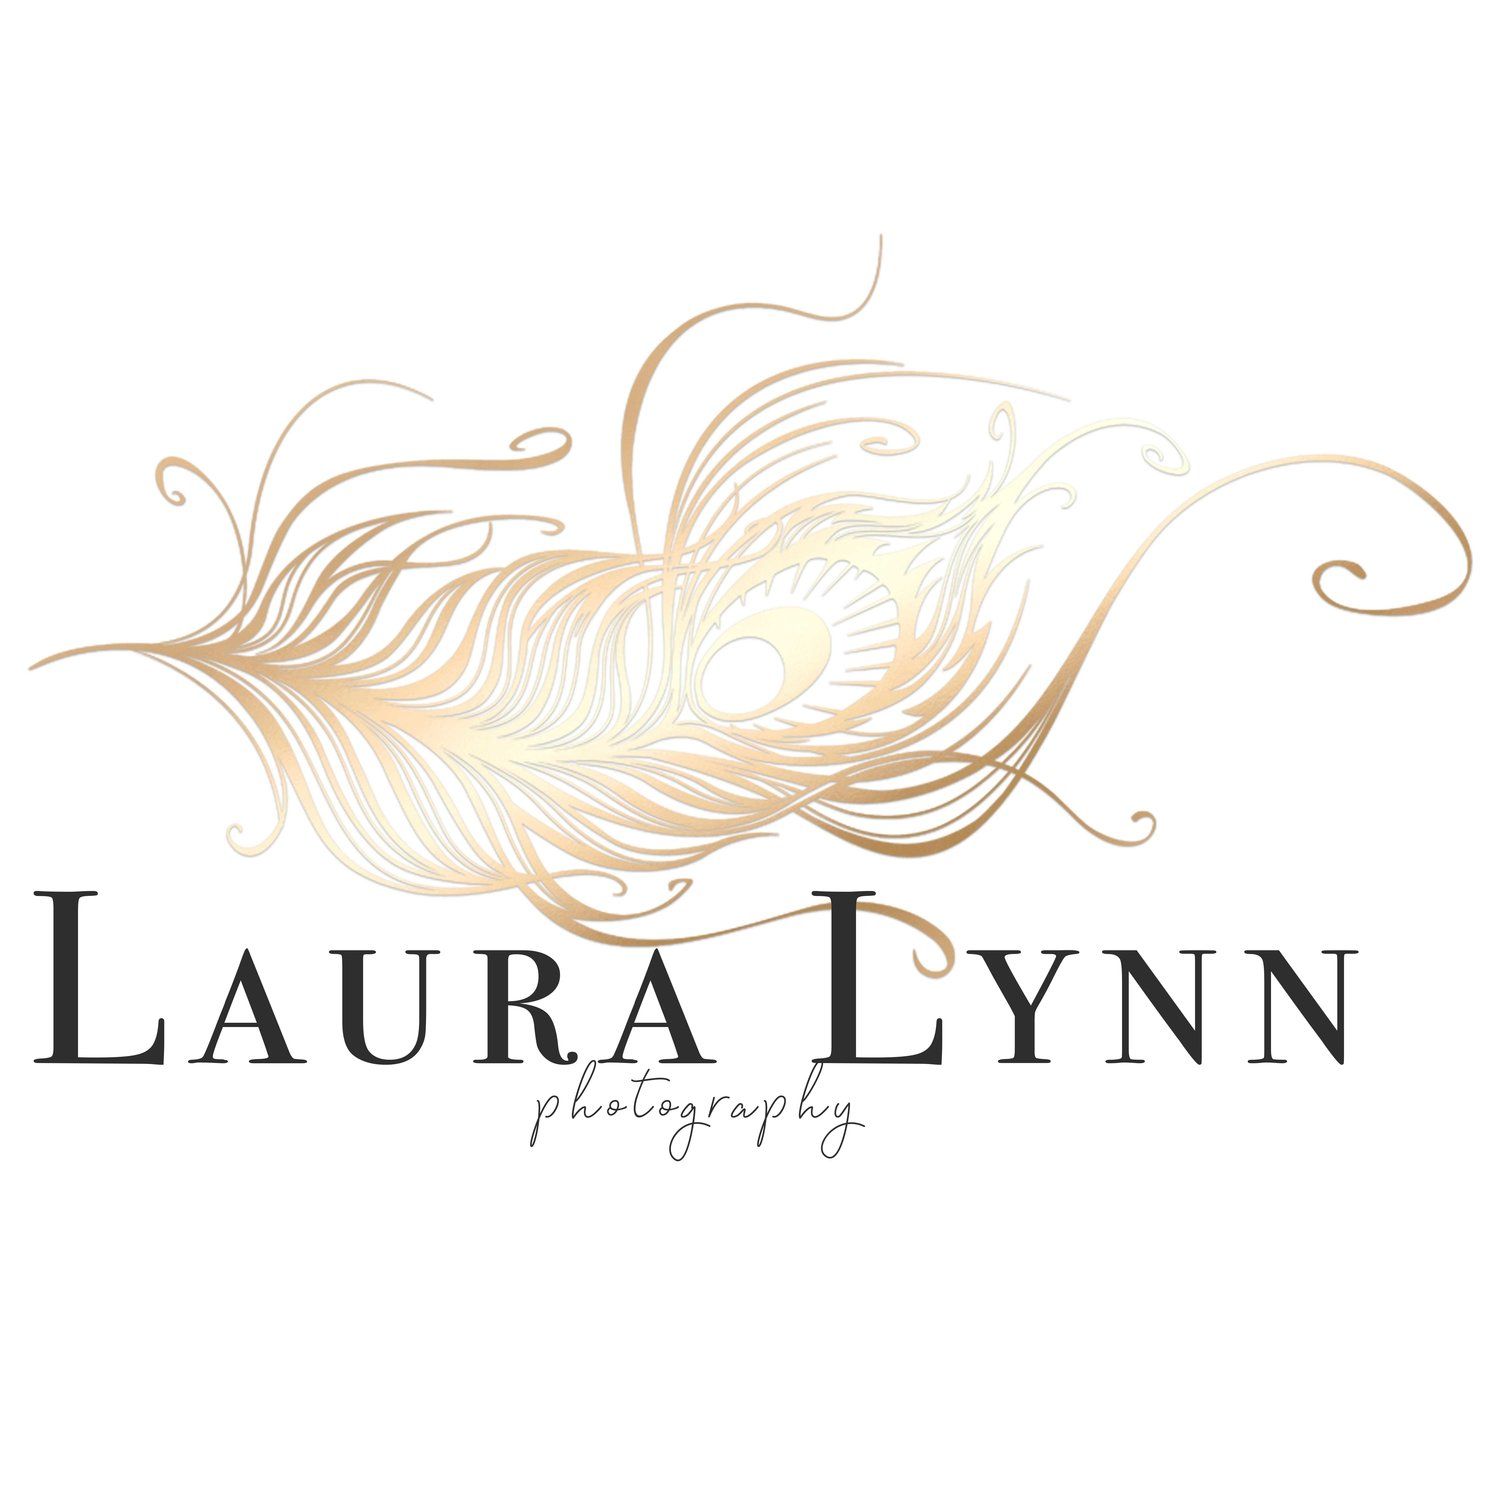 Twentynine Palms Family Photographer - Laura Lynn Photography